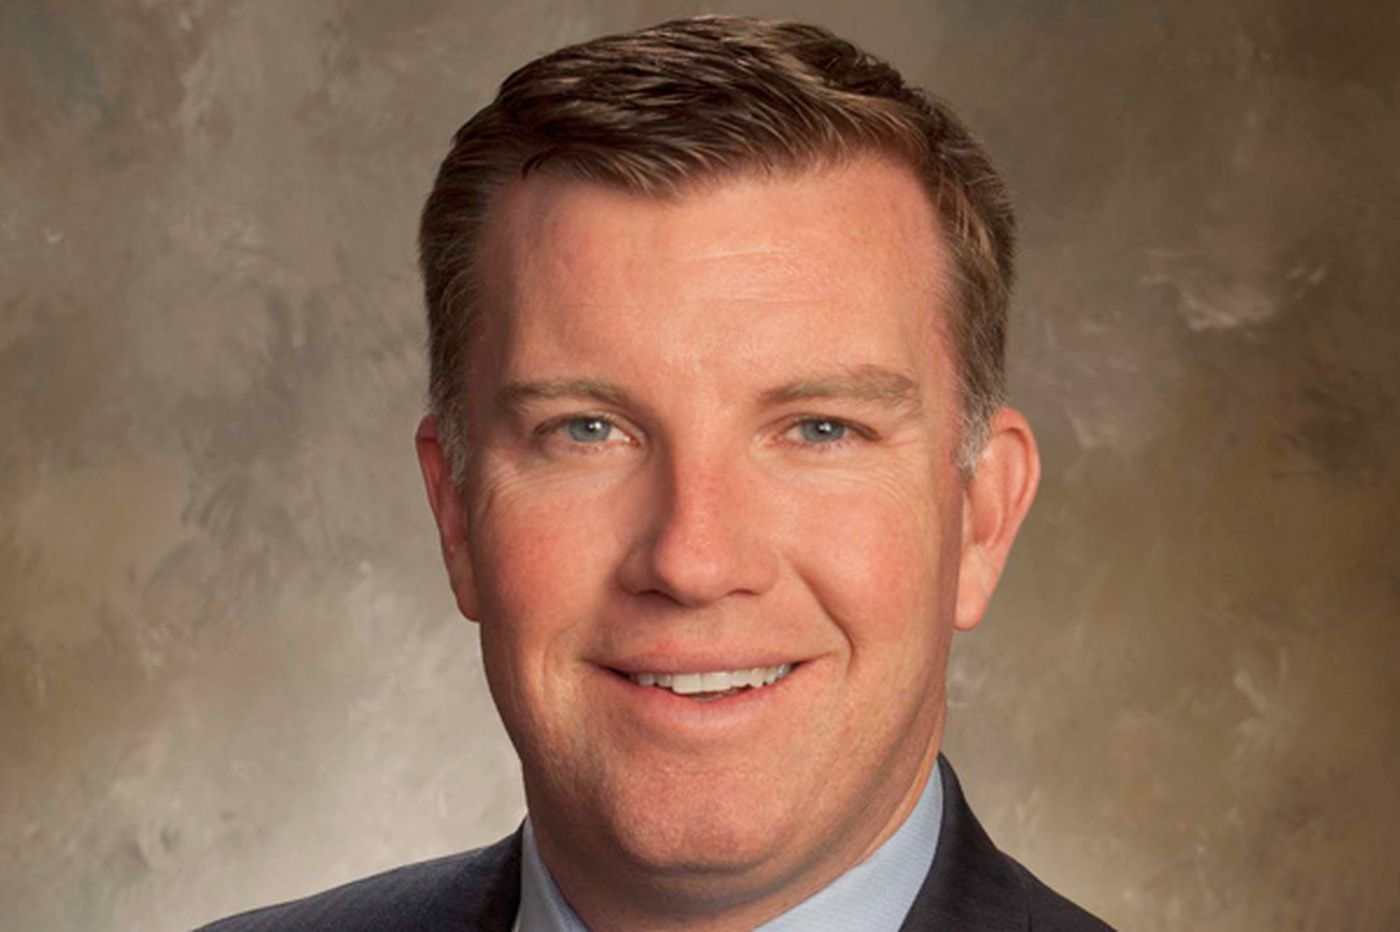 New Pa. Turnpike head says he's ready to face down corruption